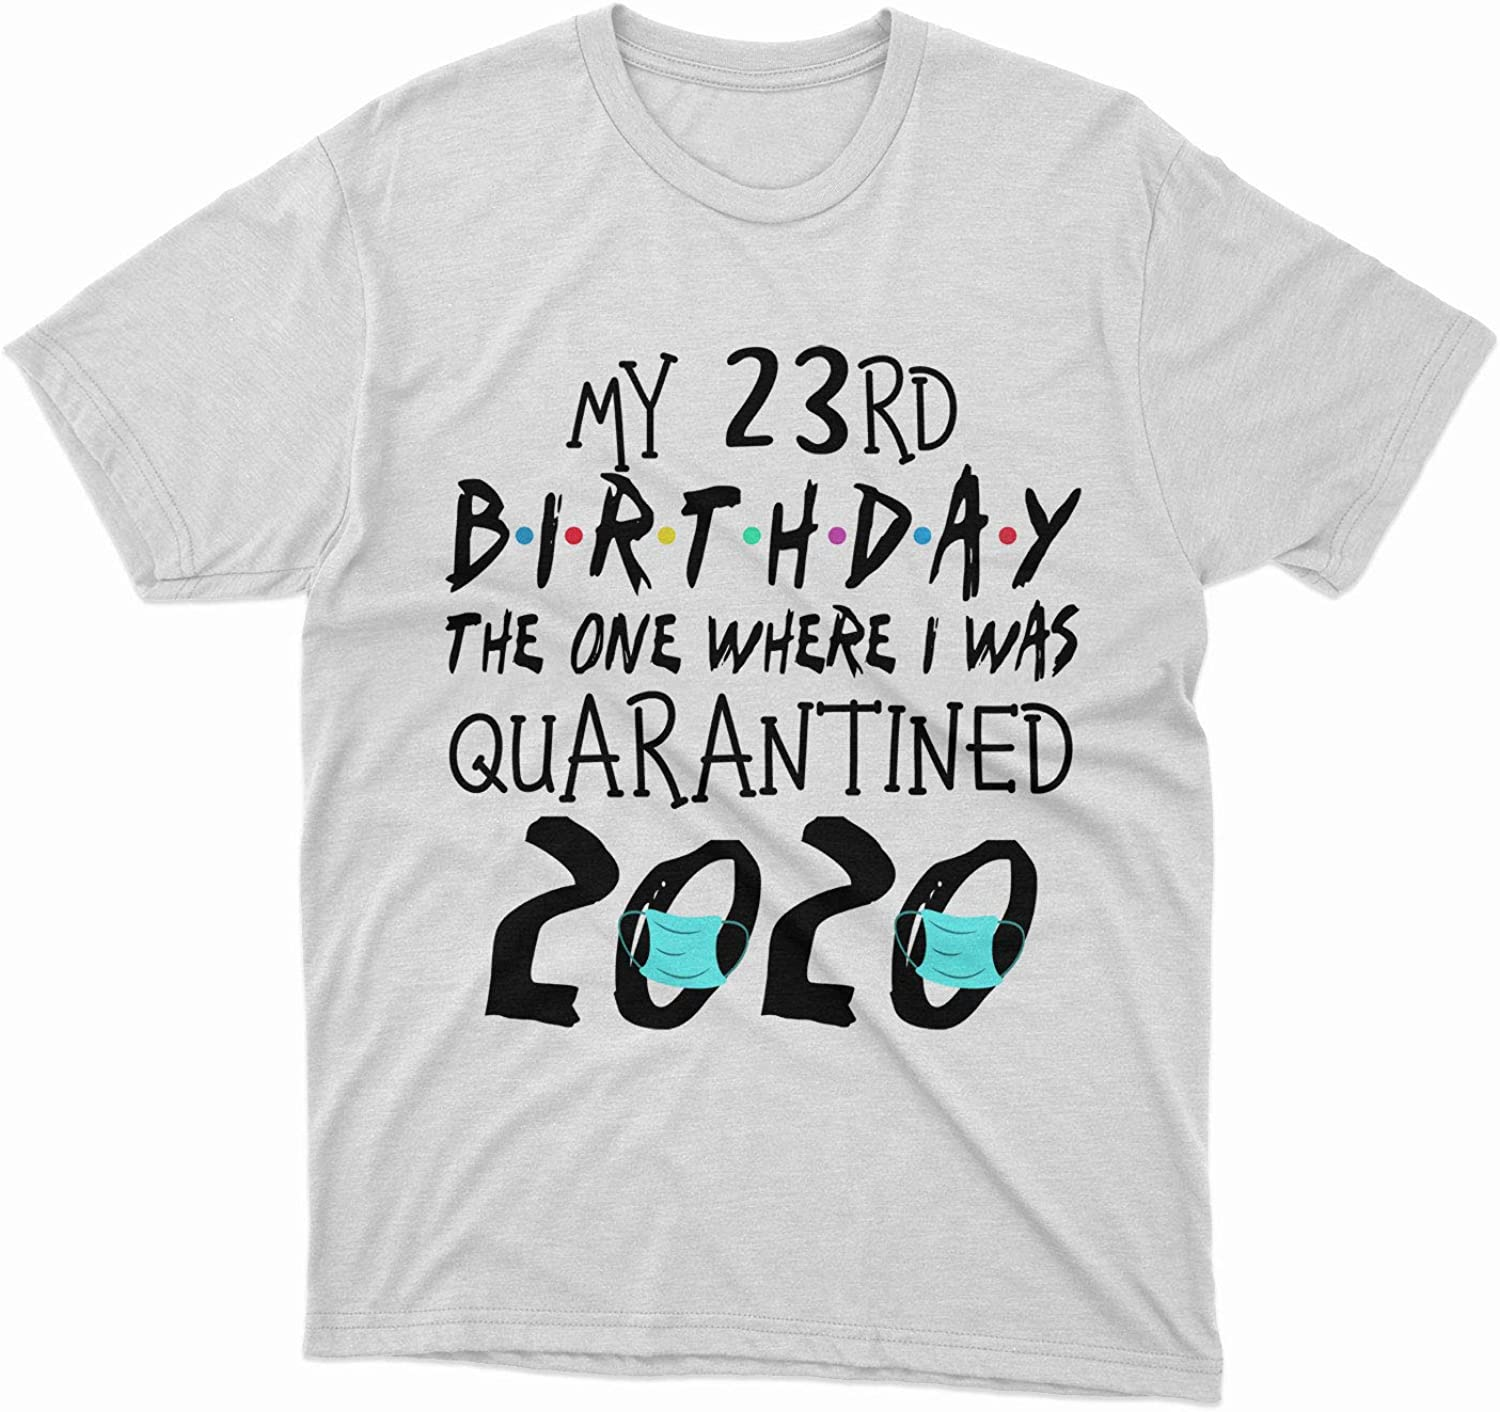 Born in 1997 - My 23rd Birthday The One Where I was Quarantined 2020 - Funny Quarantined Gift Ideas